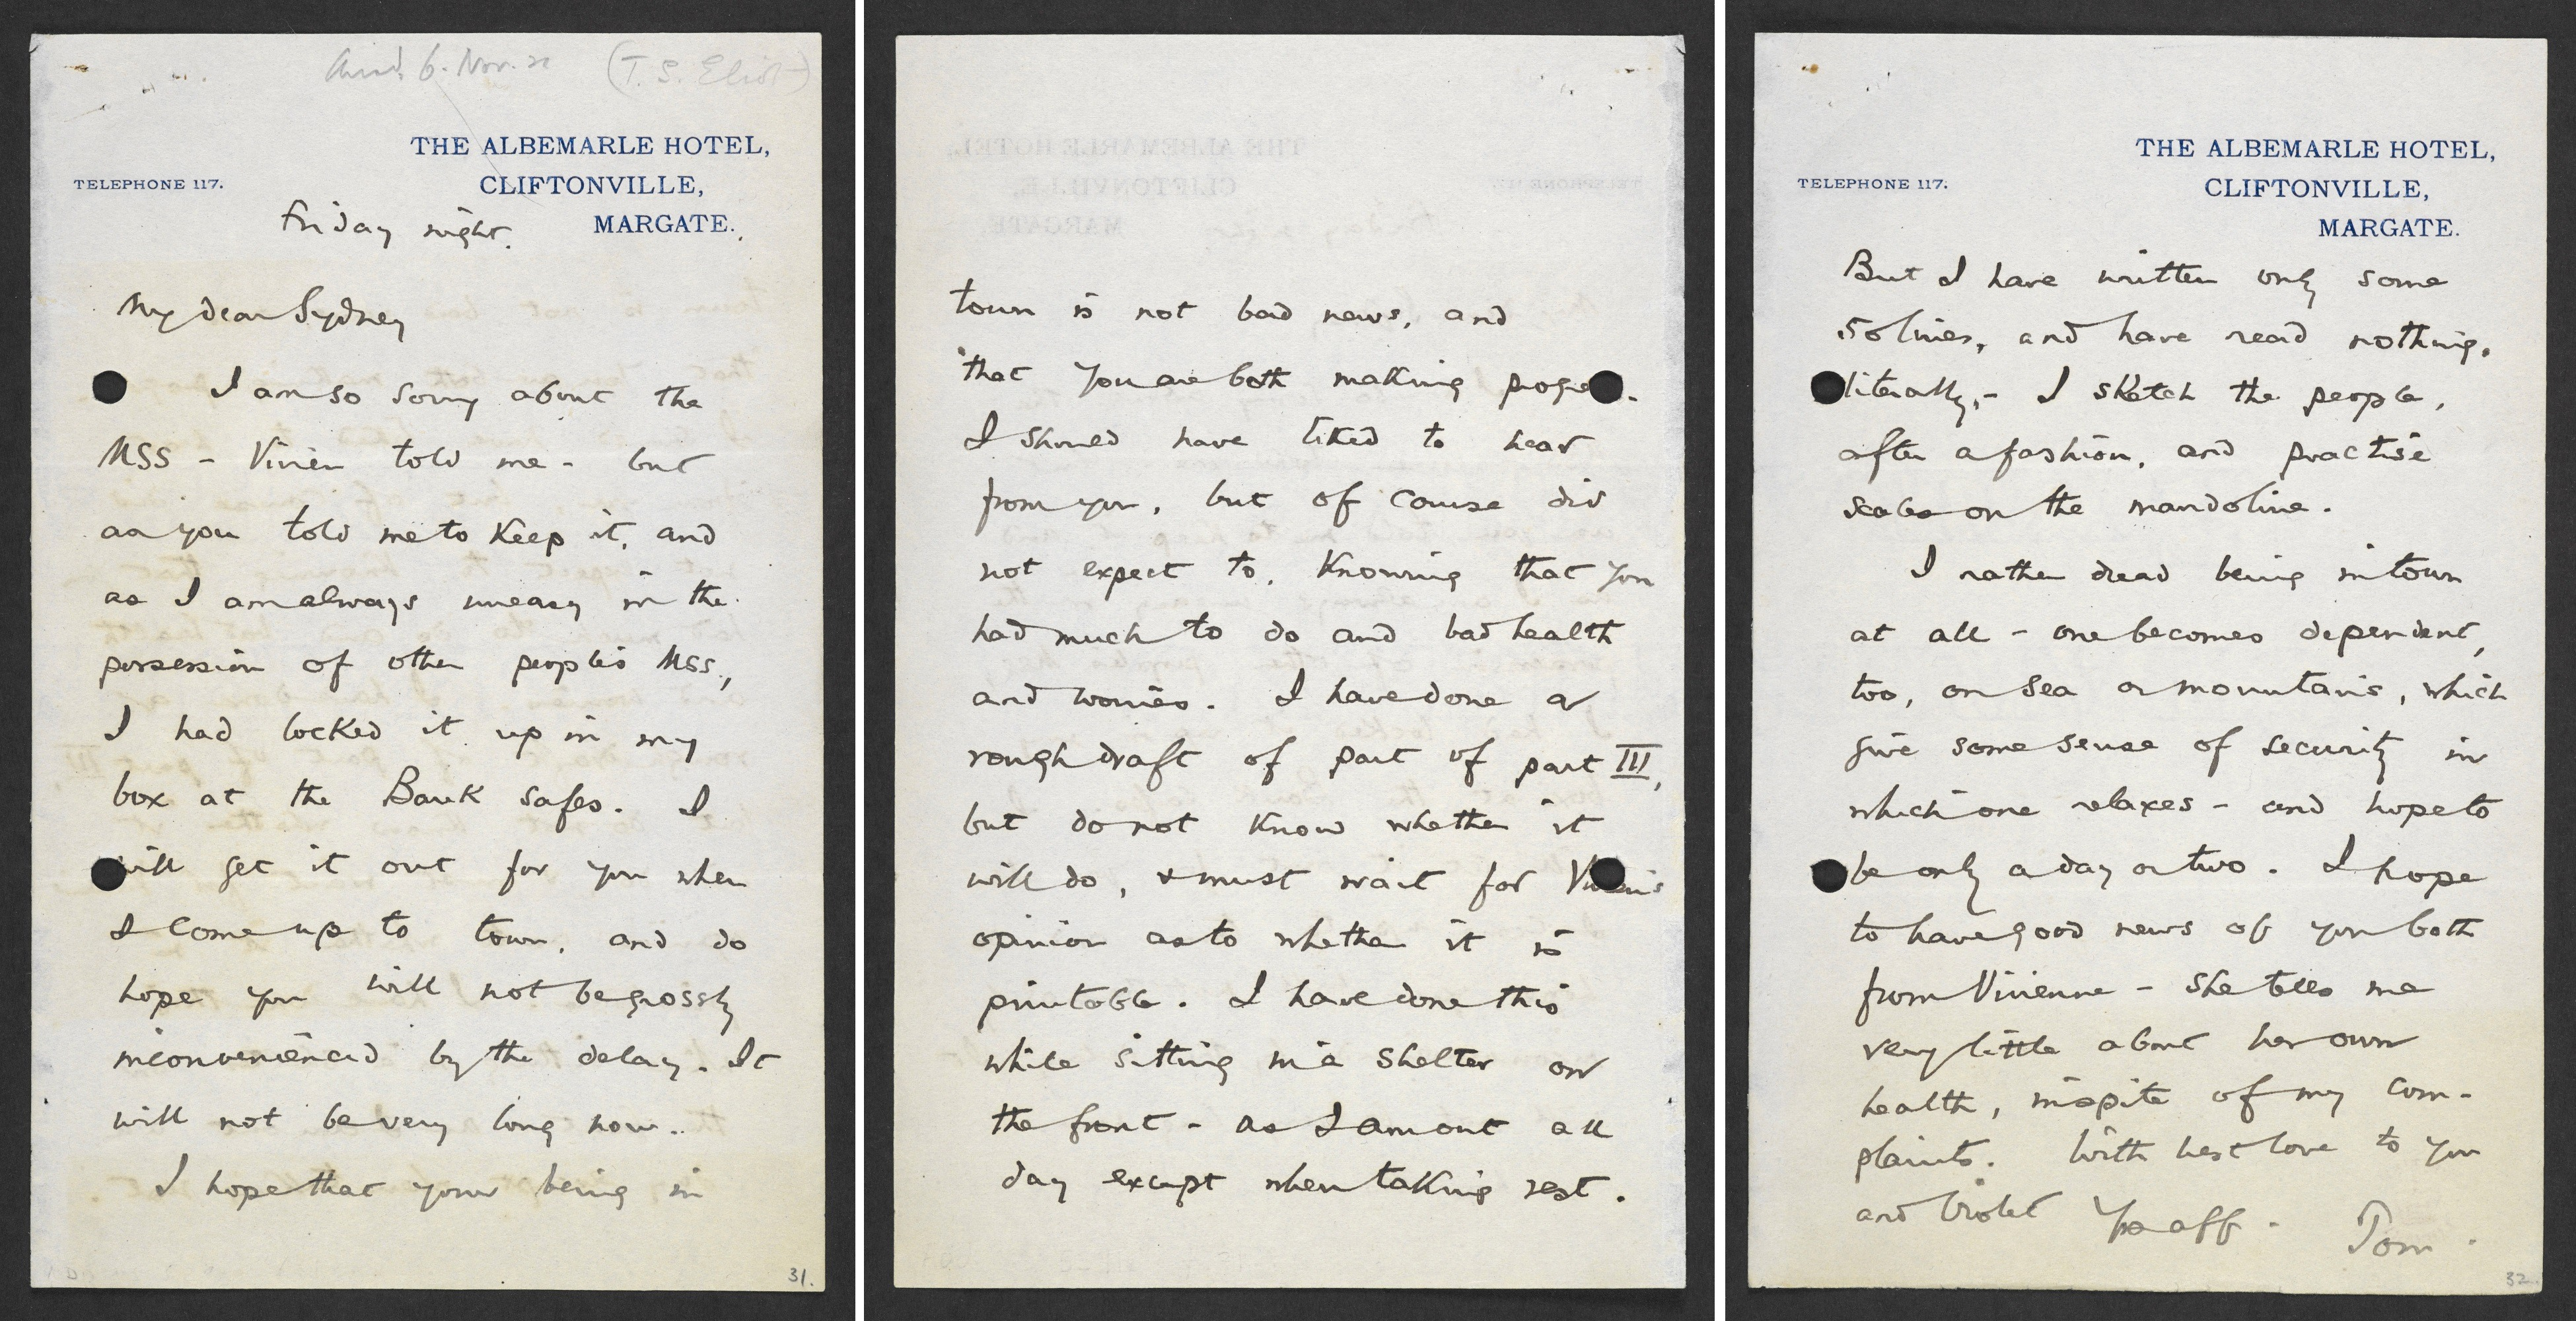 https://www.bl.uk/collection-items/letters-from-t-s-eliot-and-vivienne-eliot-relating-to-the-waste-land